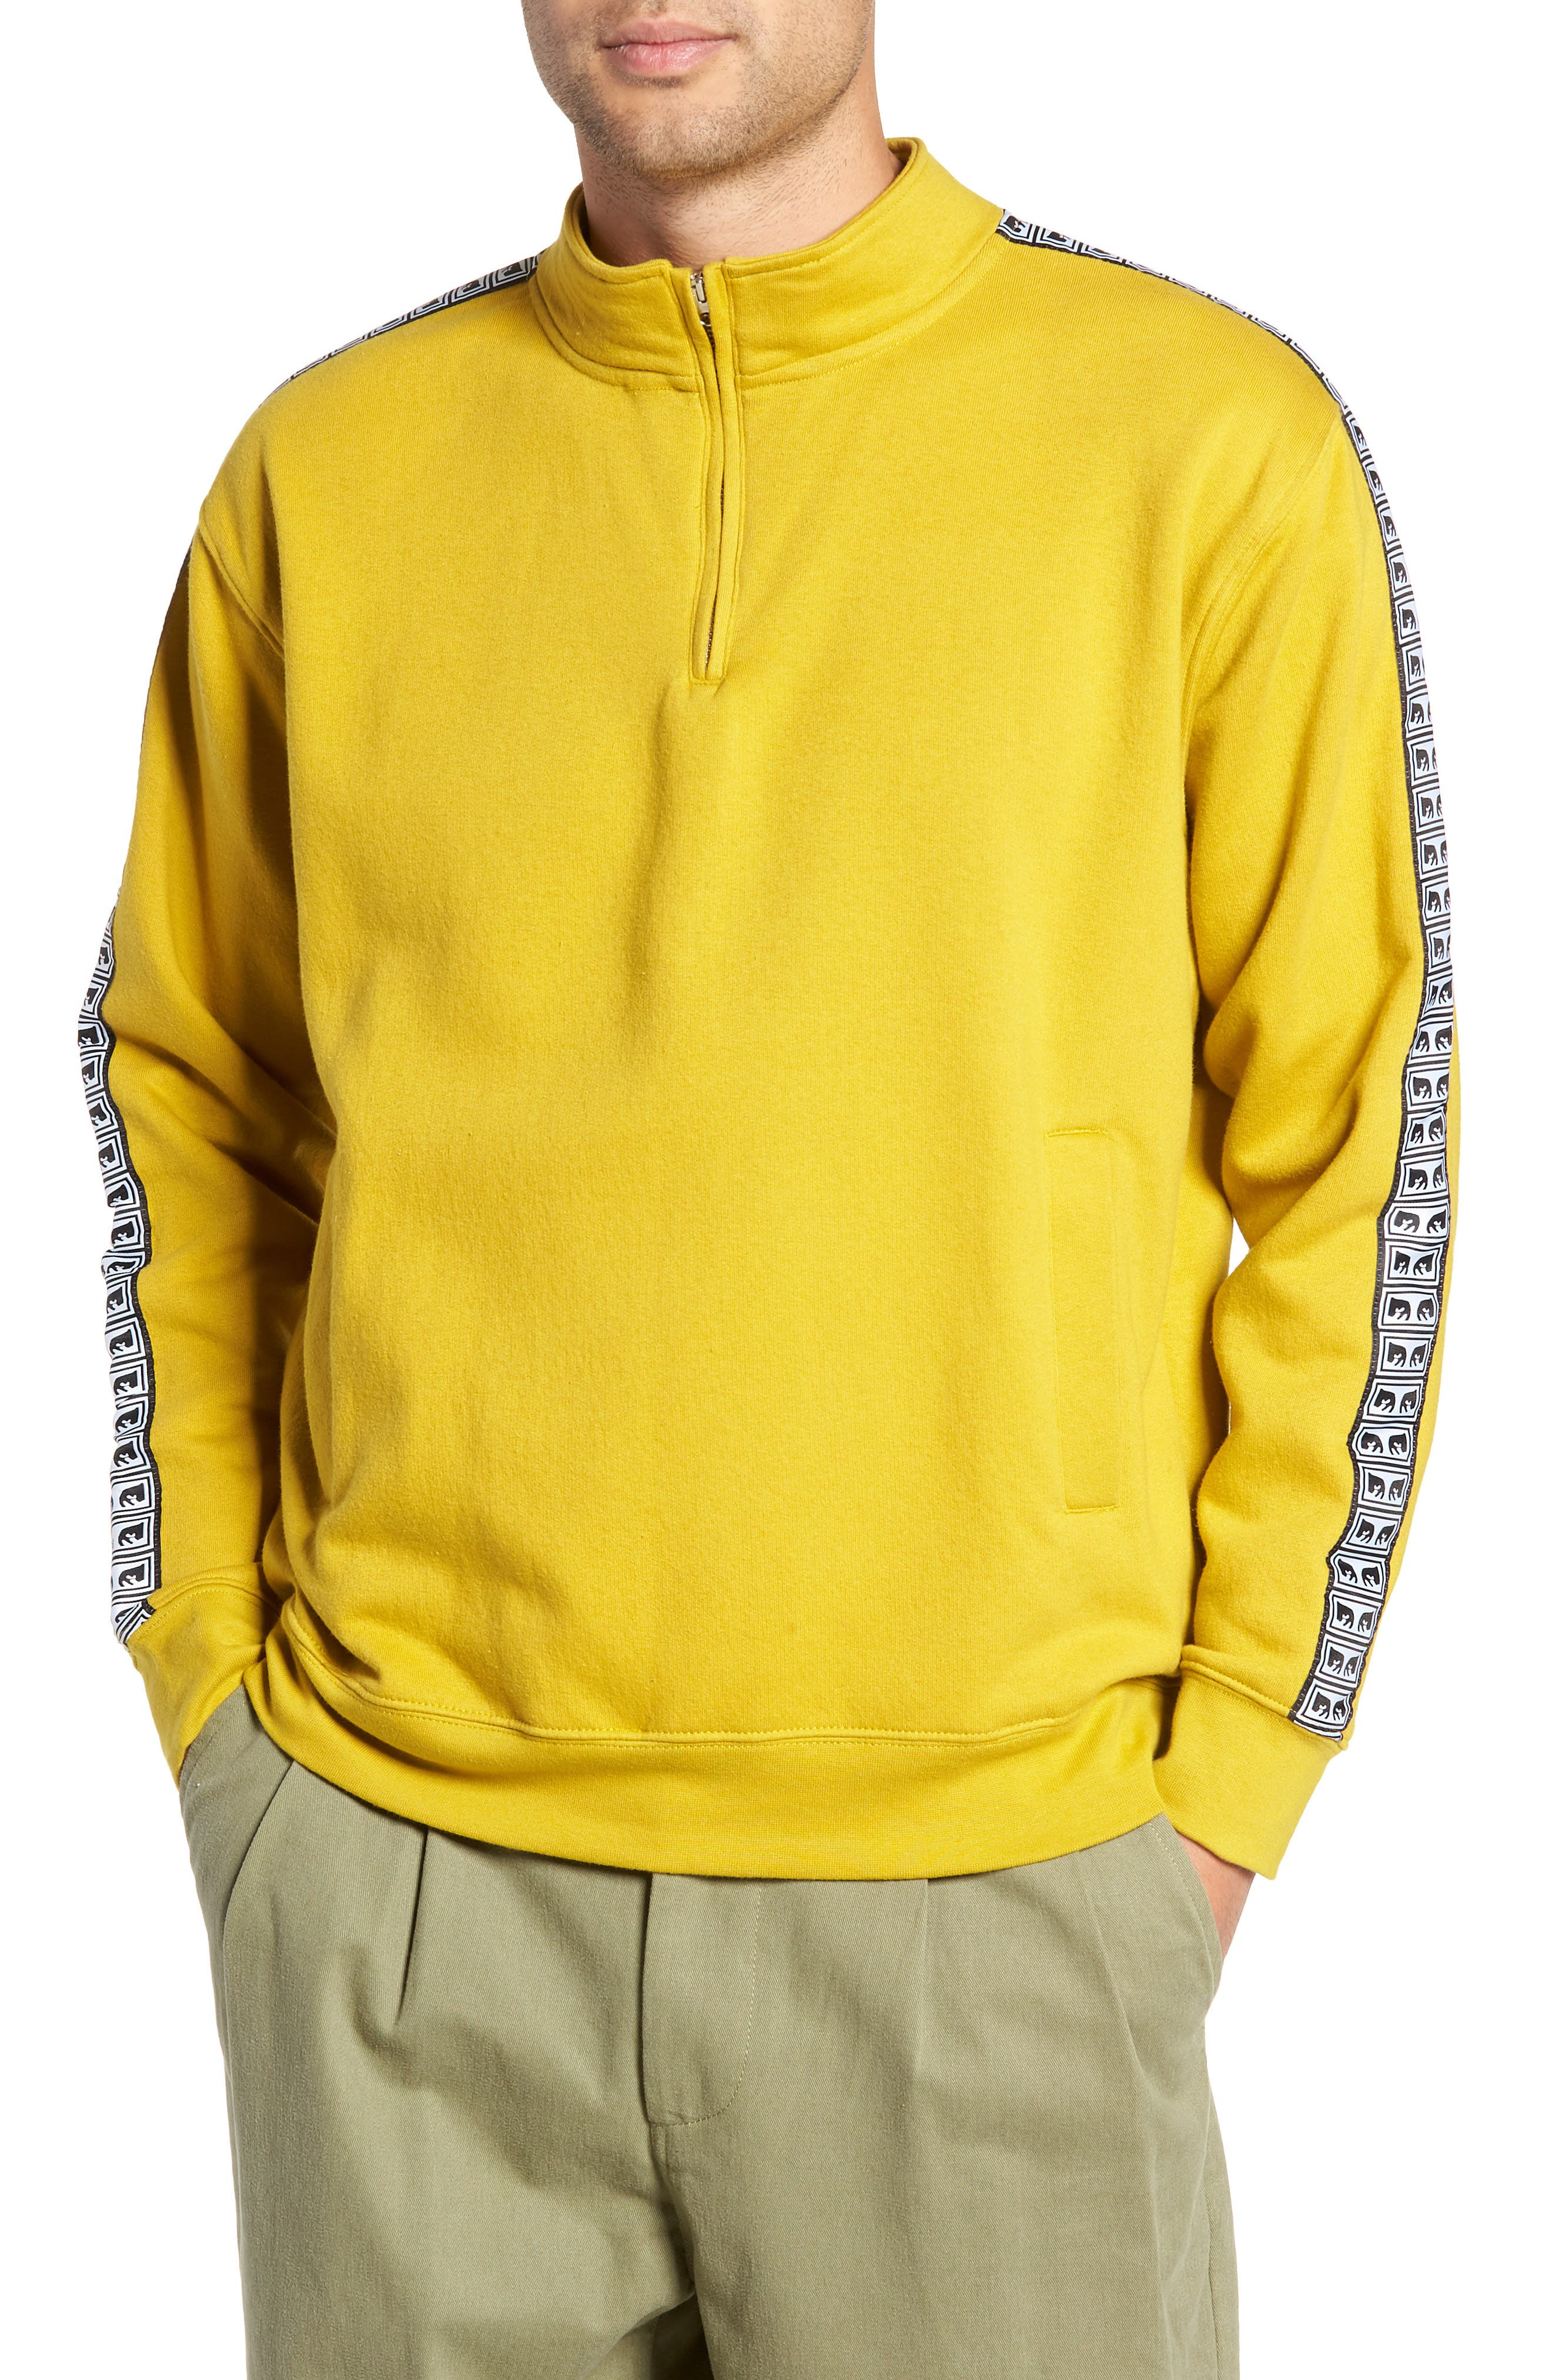 OBEY, Bridges Logo Tape Quarter Zip Pullover, Main thumbnail 1, color, 700